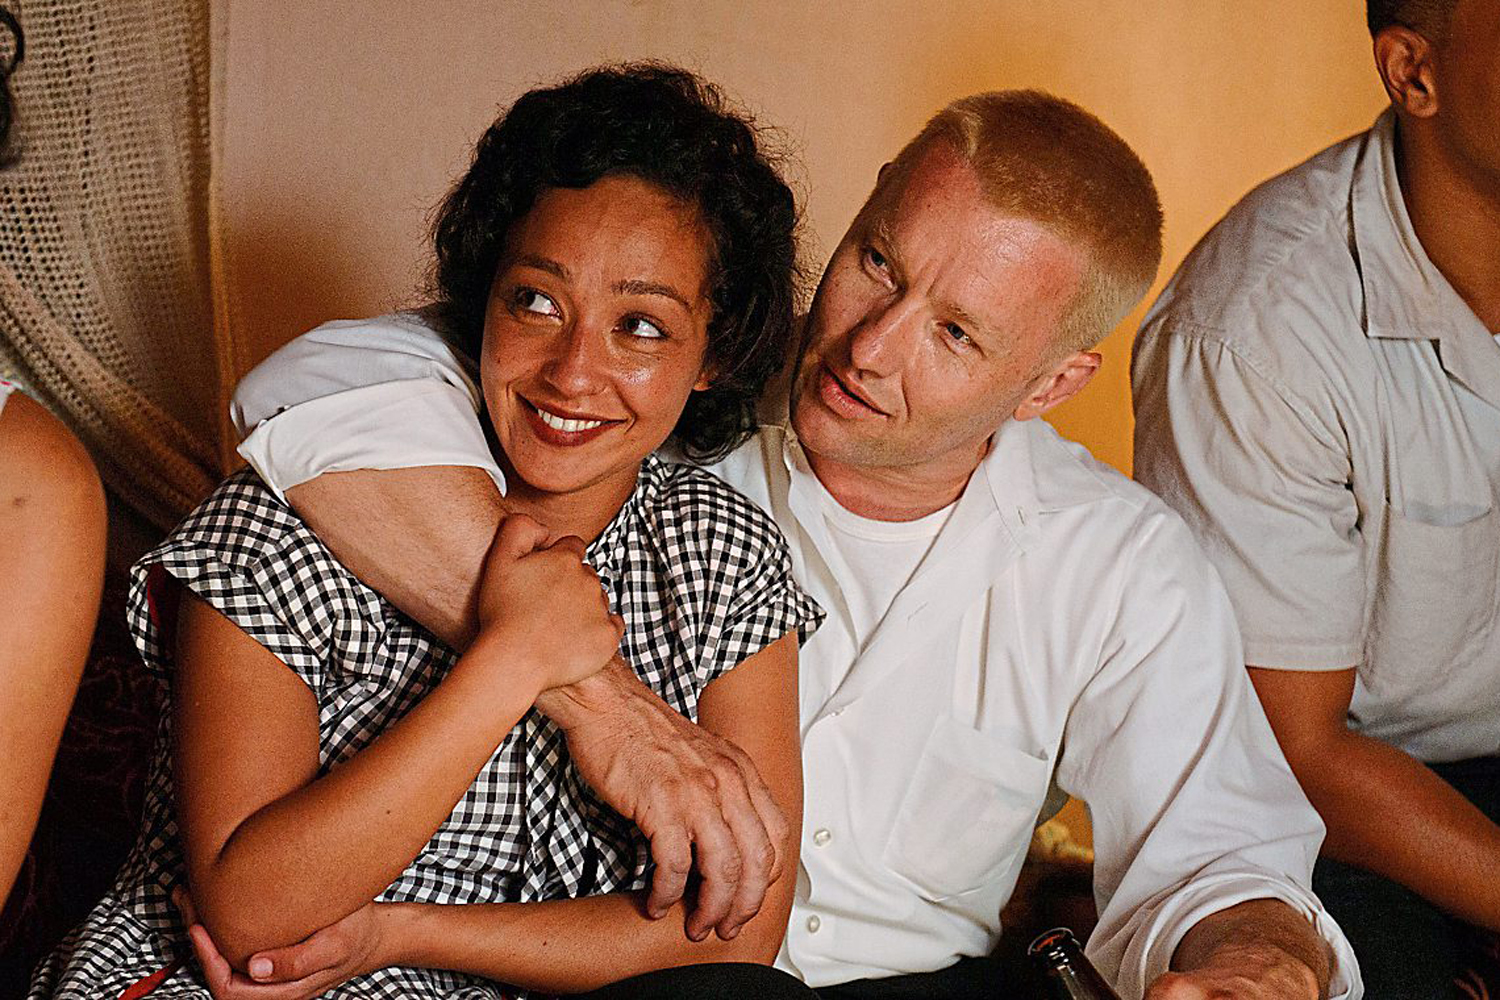 Love trumps hate - Loving tells the story of Richard and Mildred Loving, the couple whose victory against the Supreme Court legalized interracial marriage in the United States. | Photo courtesy of Focus Features